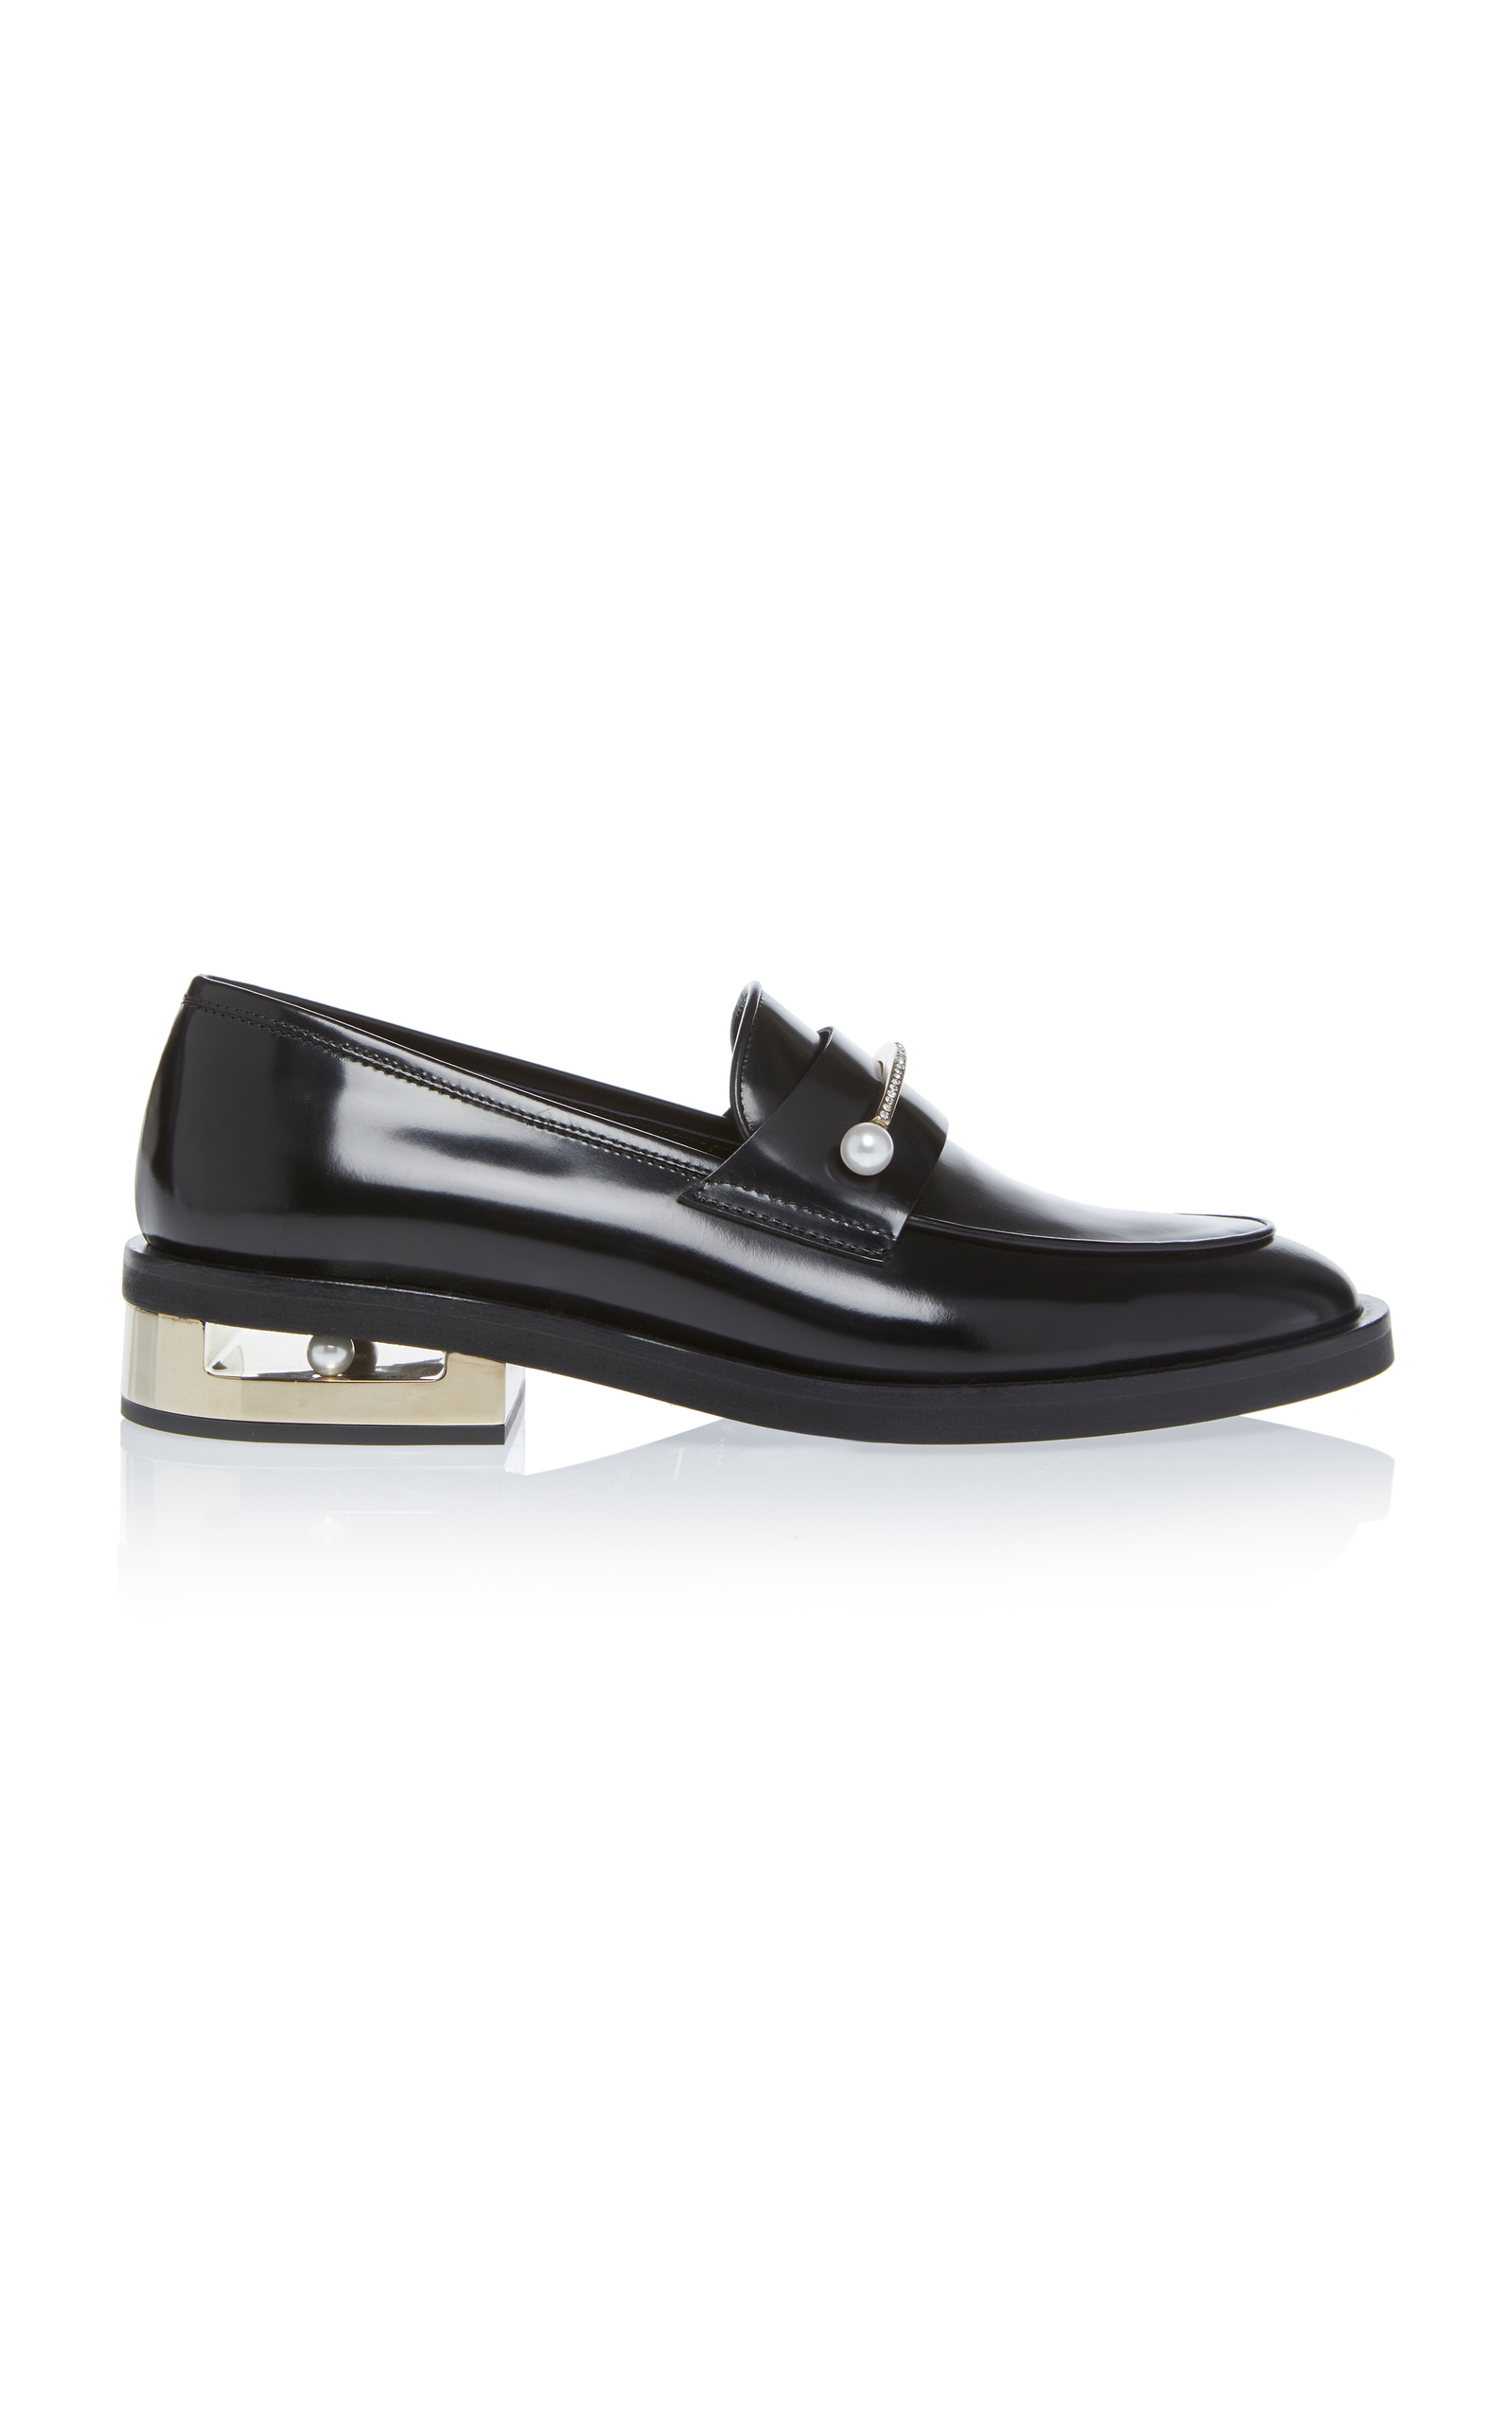 Abby Black Leather Loafer With Jewel